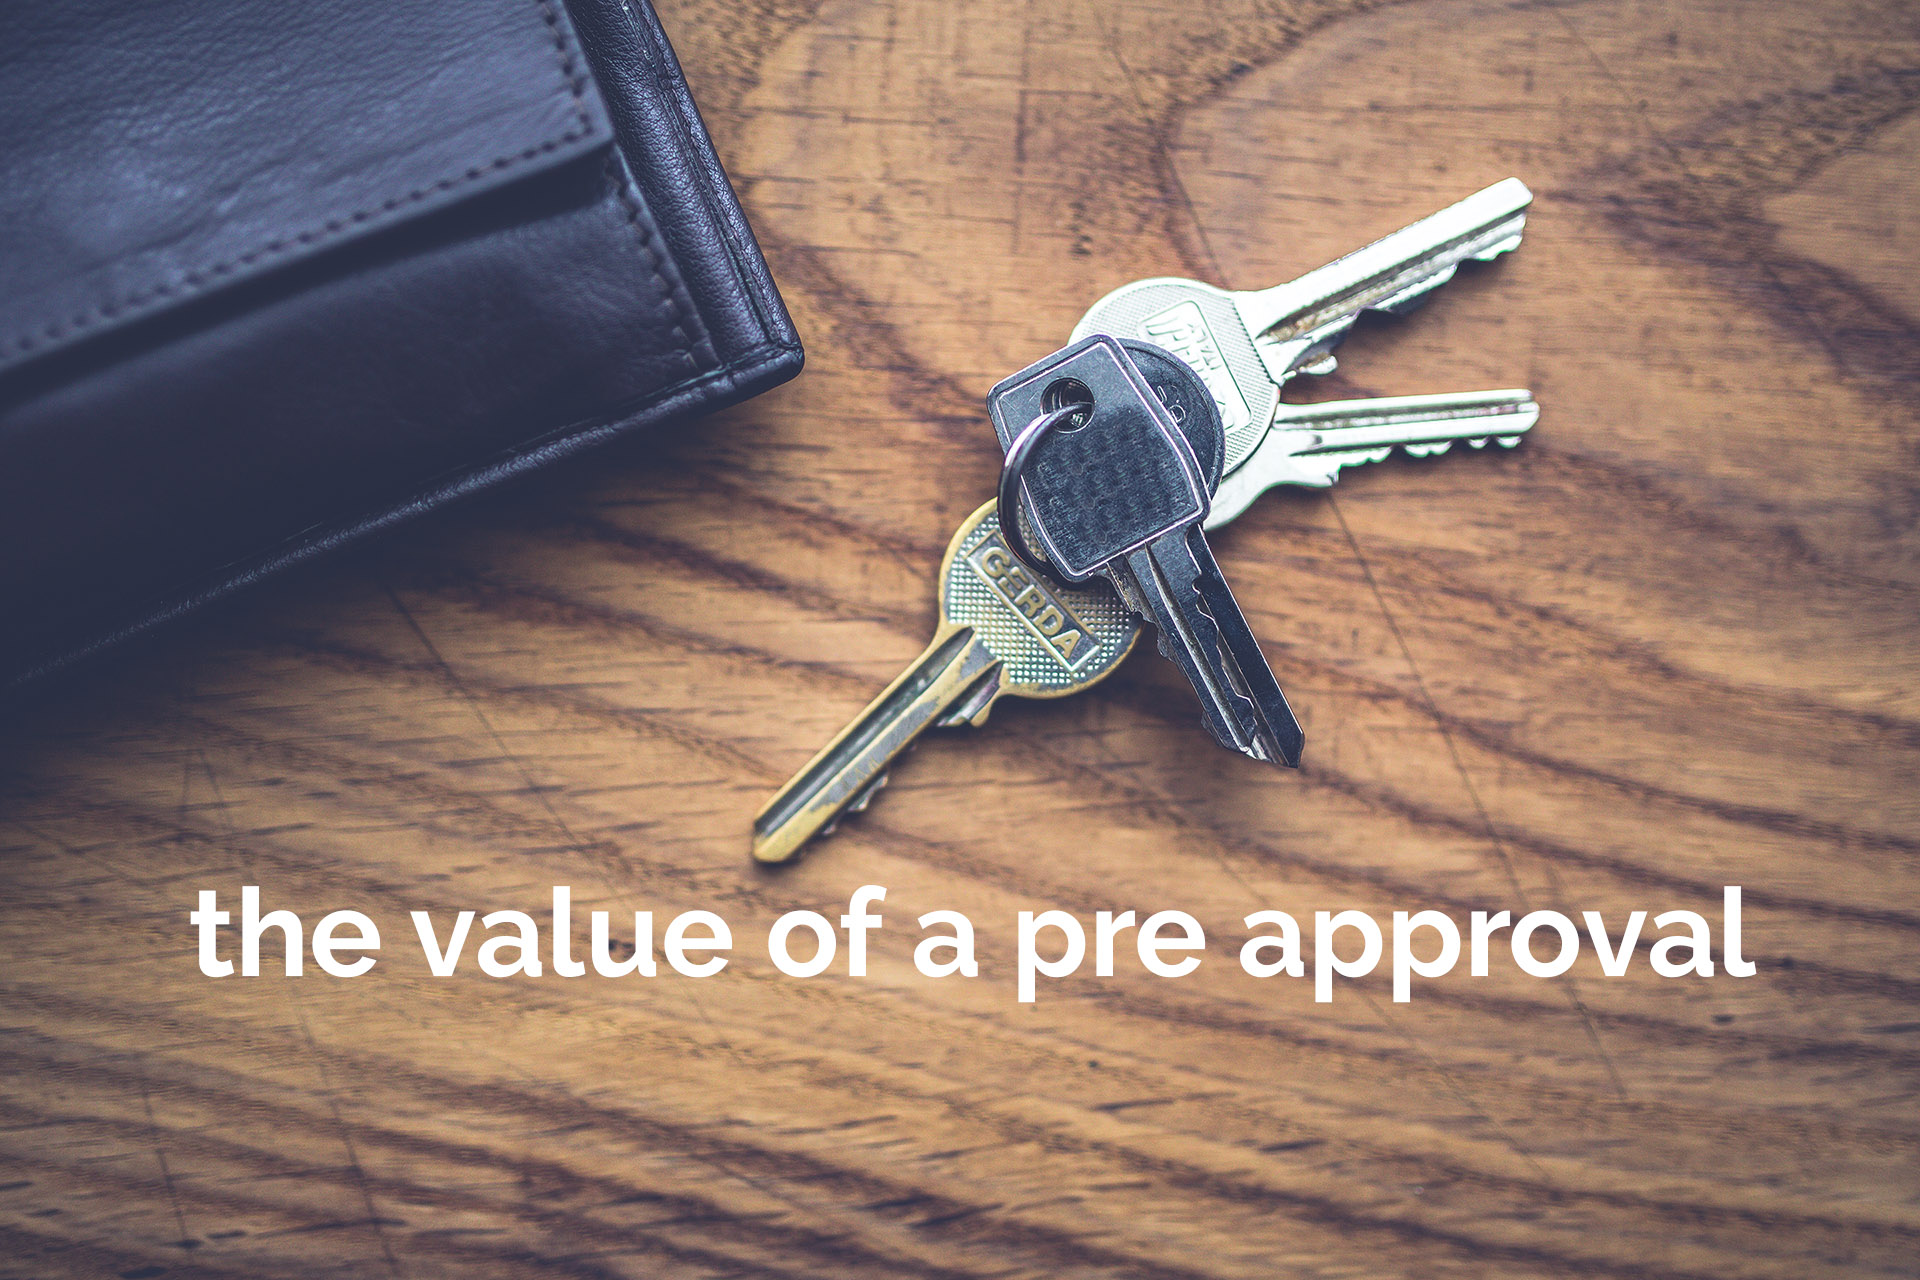 the value of a pre approval